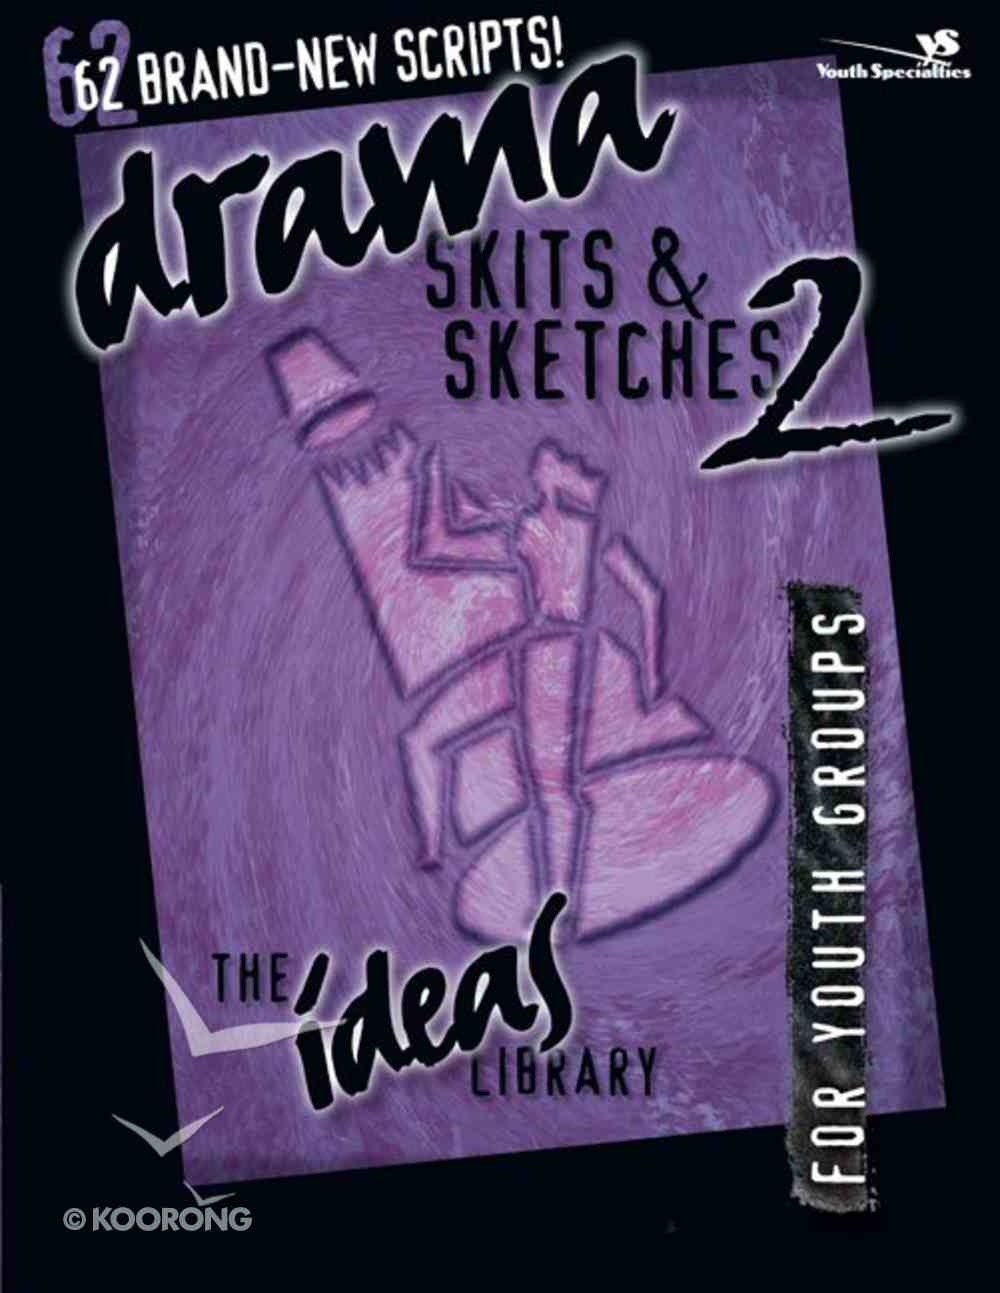 Ideas Library: Drama, Skits & Sketches 2 Paperback